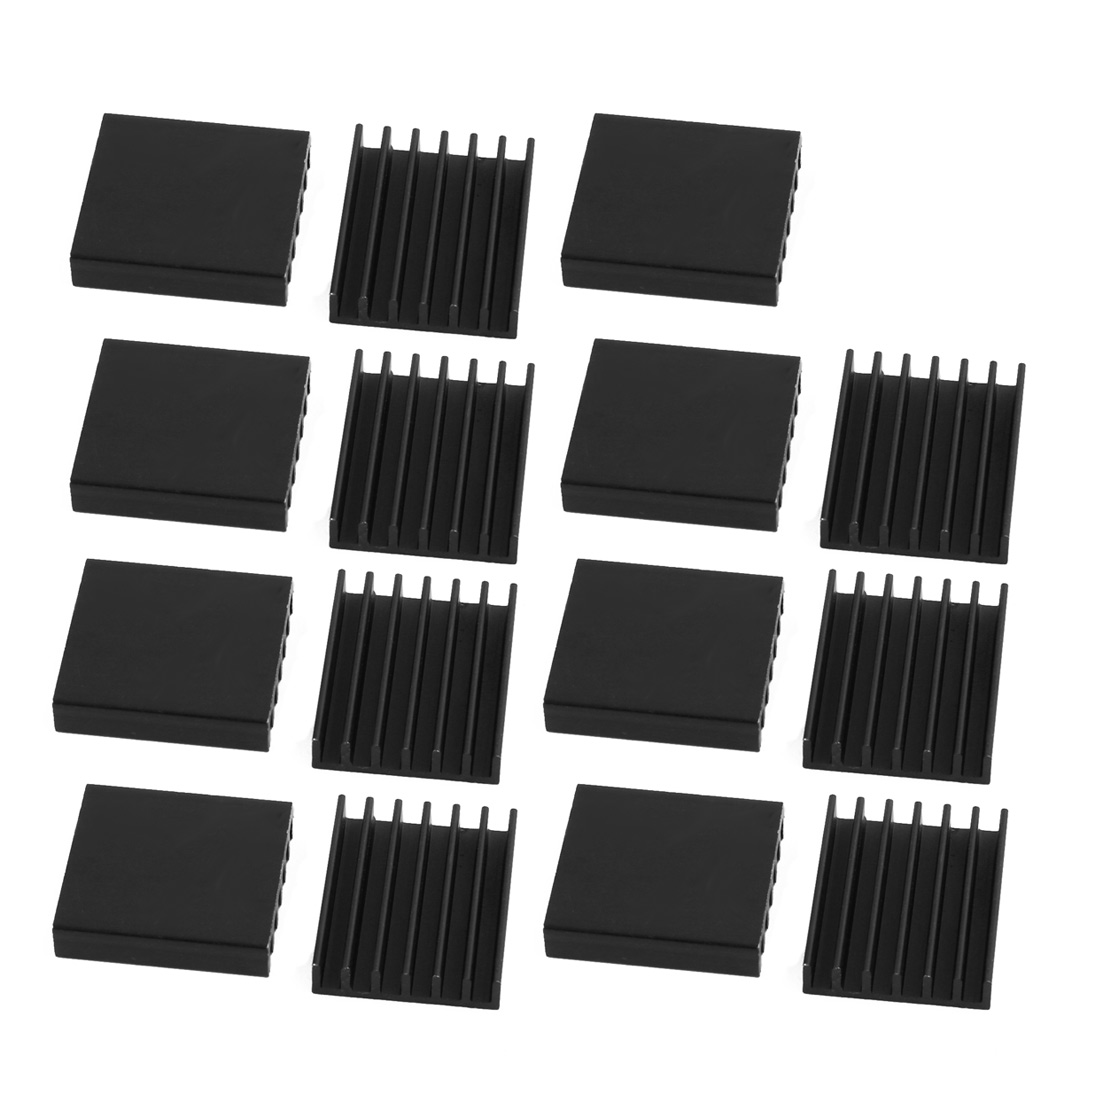 15pcs 14.5mmx16mmx4mm Black Aluminum Heatsink Heat Diffuse Cooling Fin